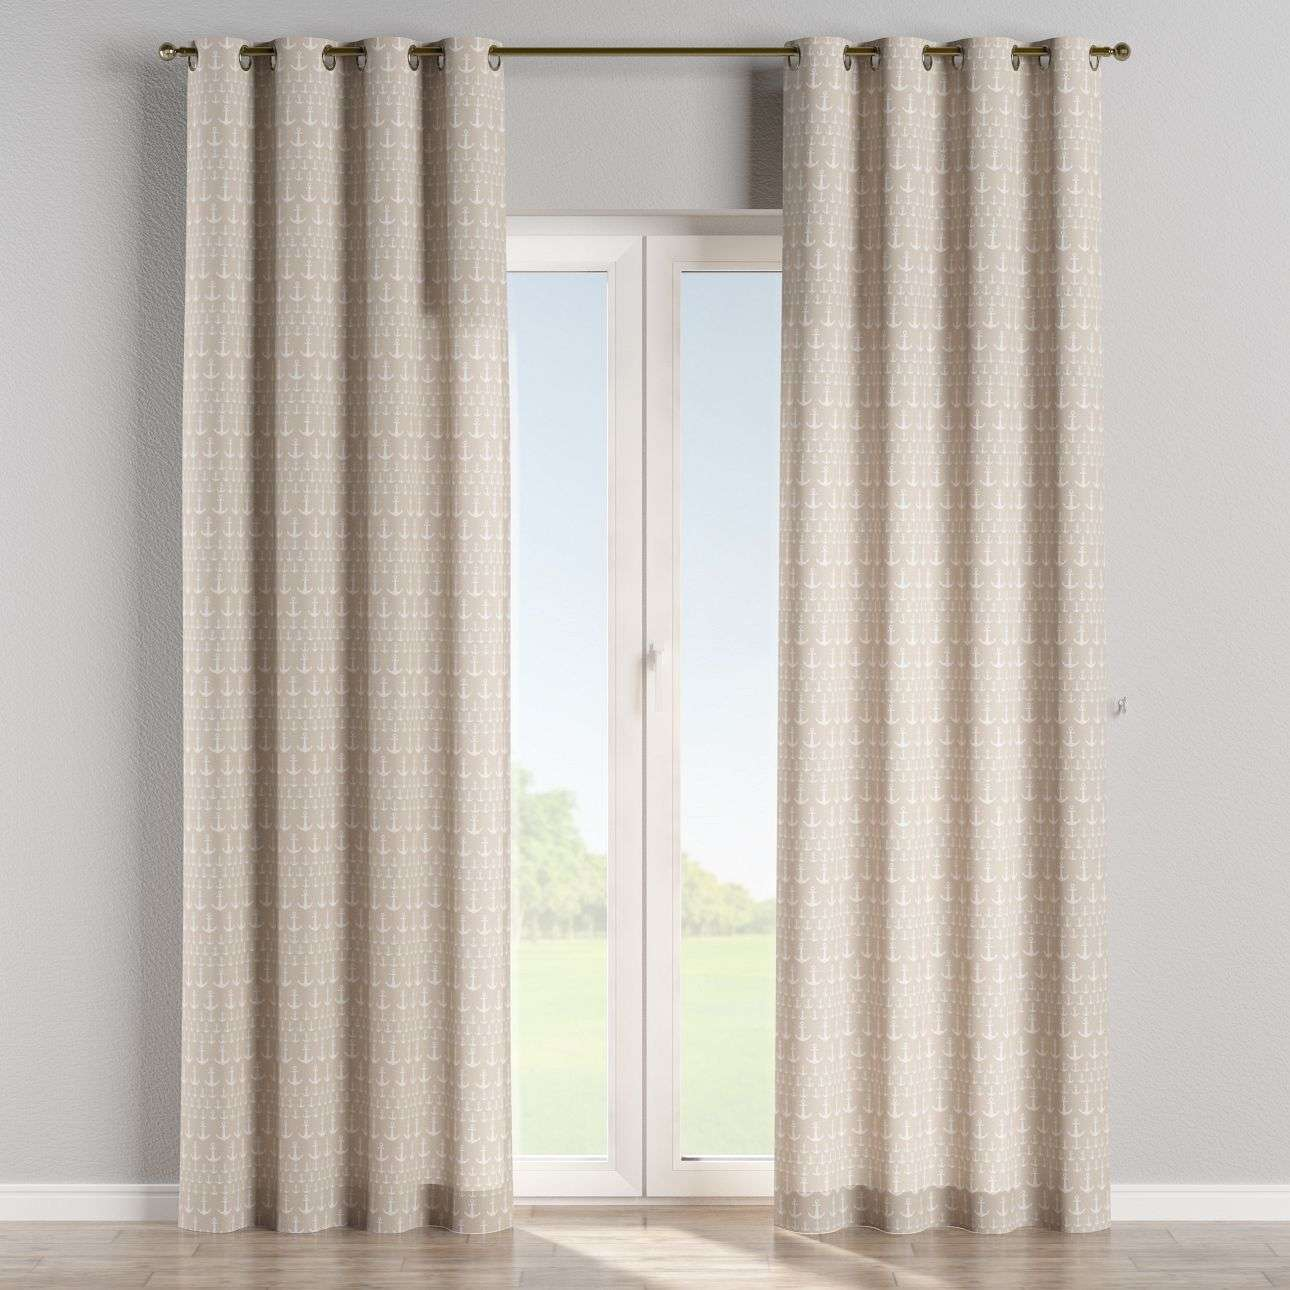 Eyelet curtains 130 x 260 cm (51 x 102 inch) in collection Marina, fabric: 140-63